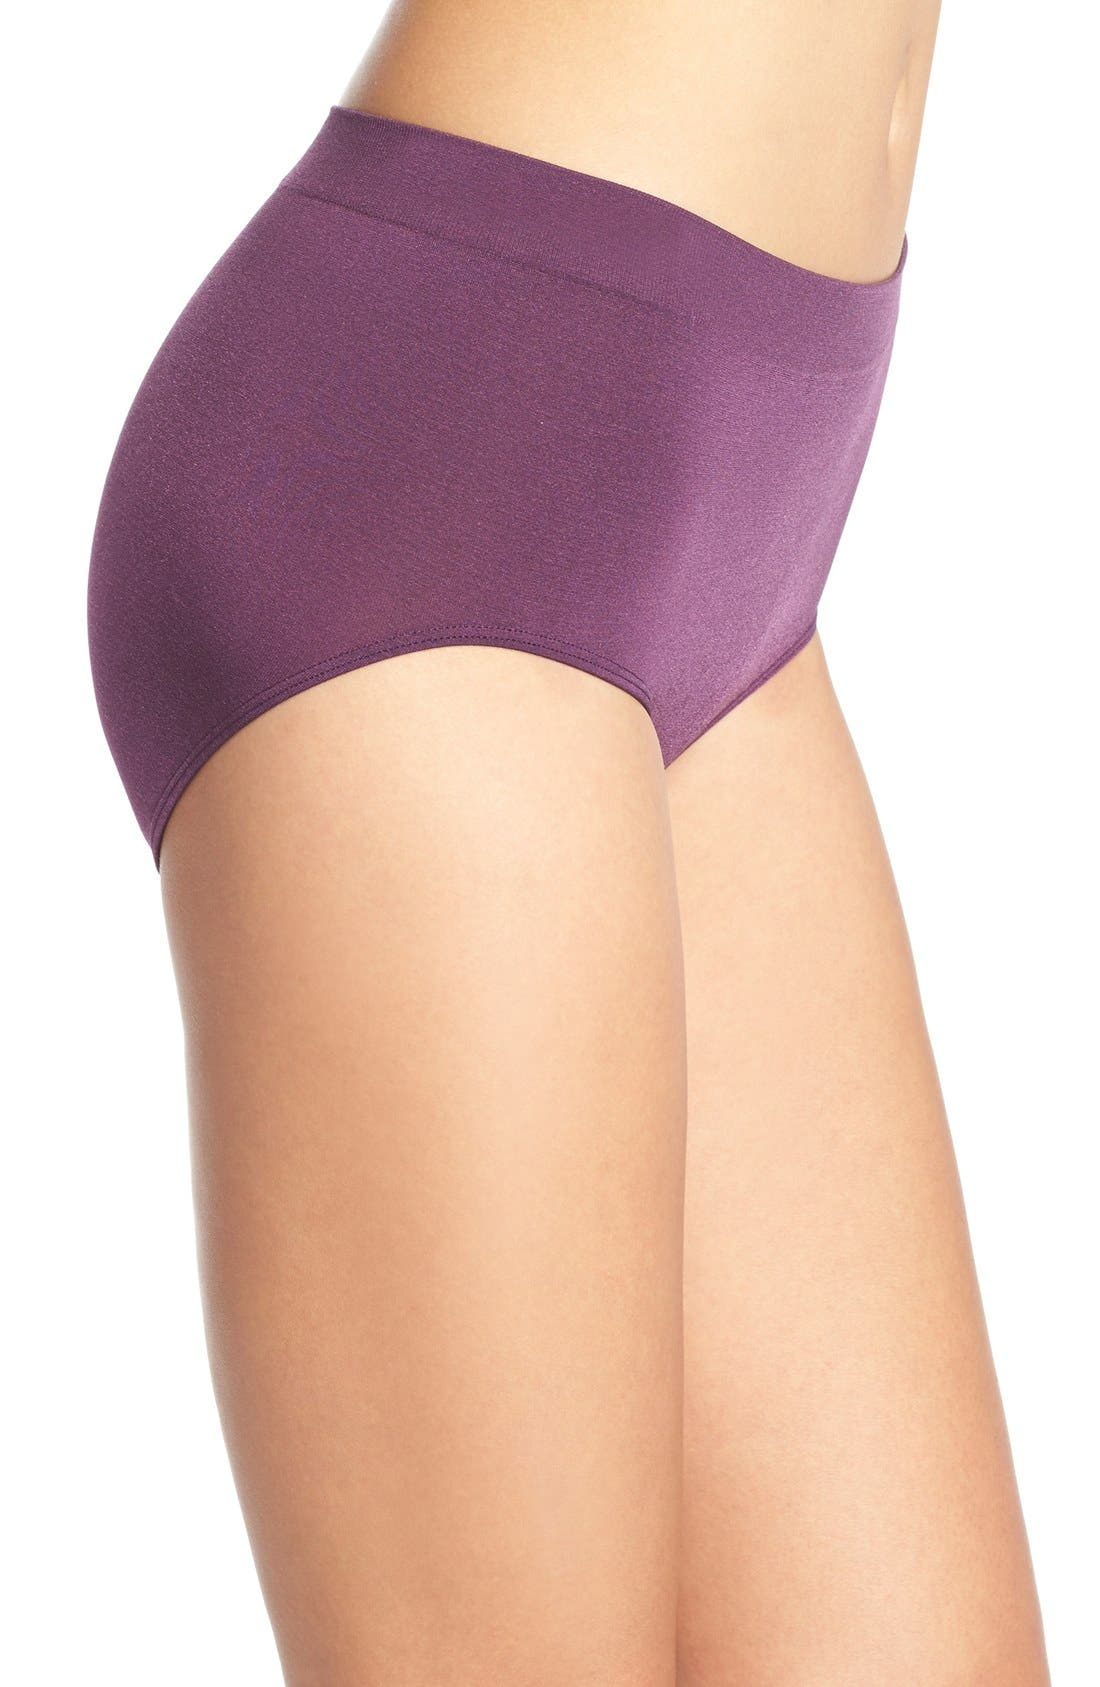 B Smooth Briefs,                             Alternate thumbnail 171, color,